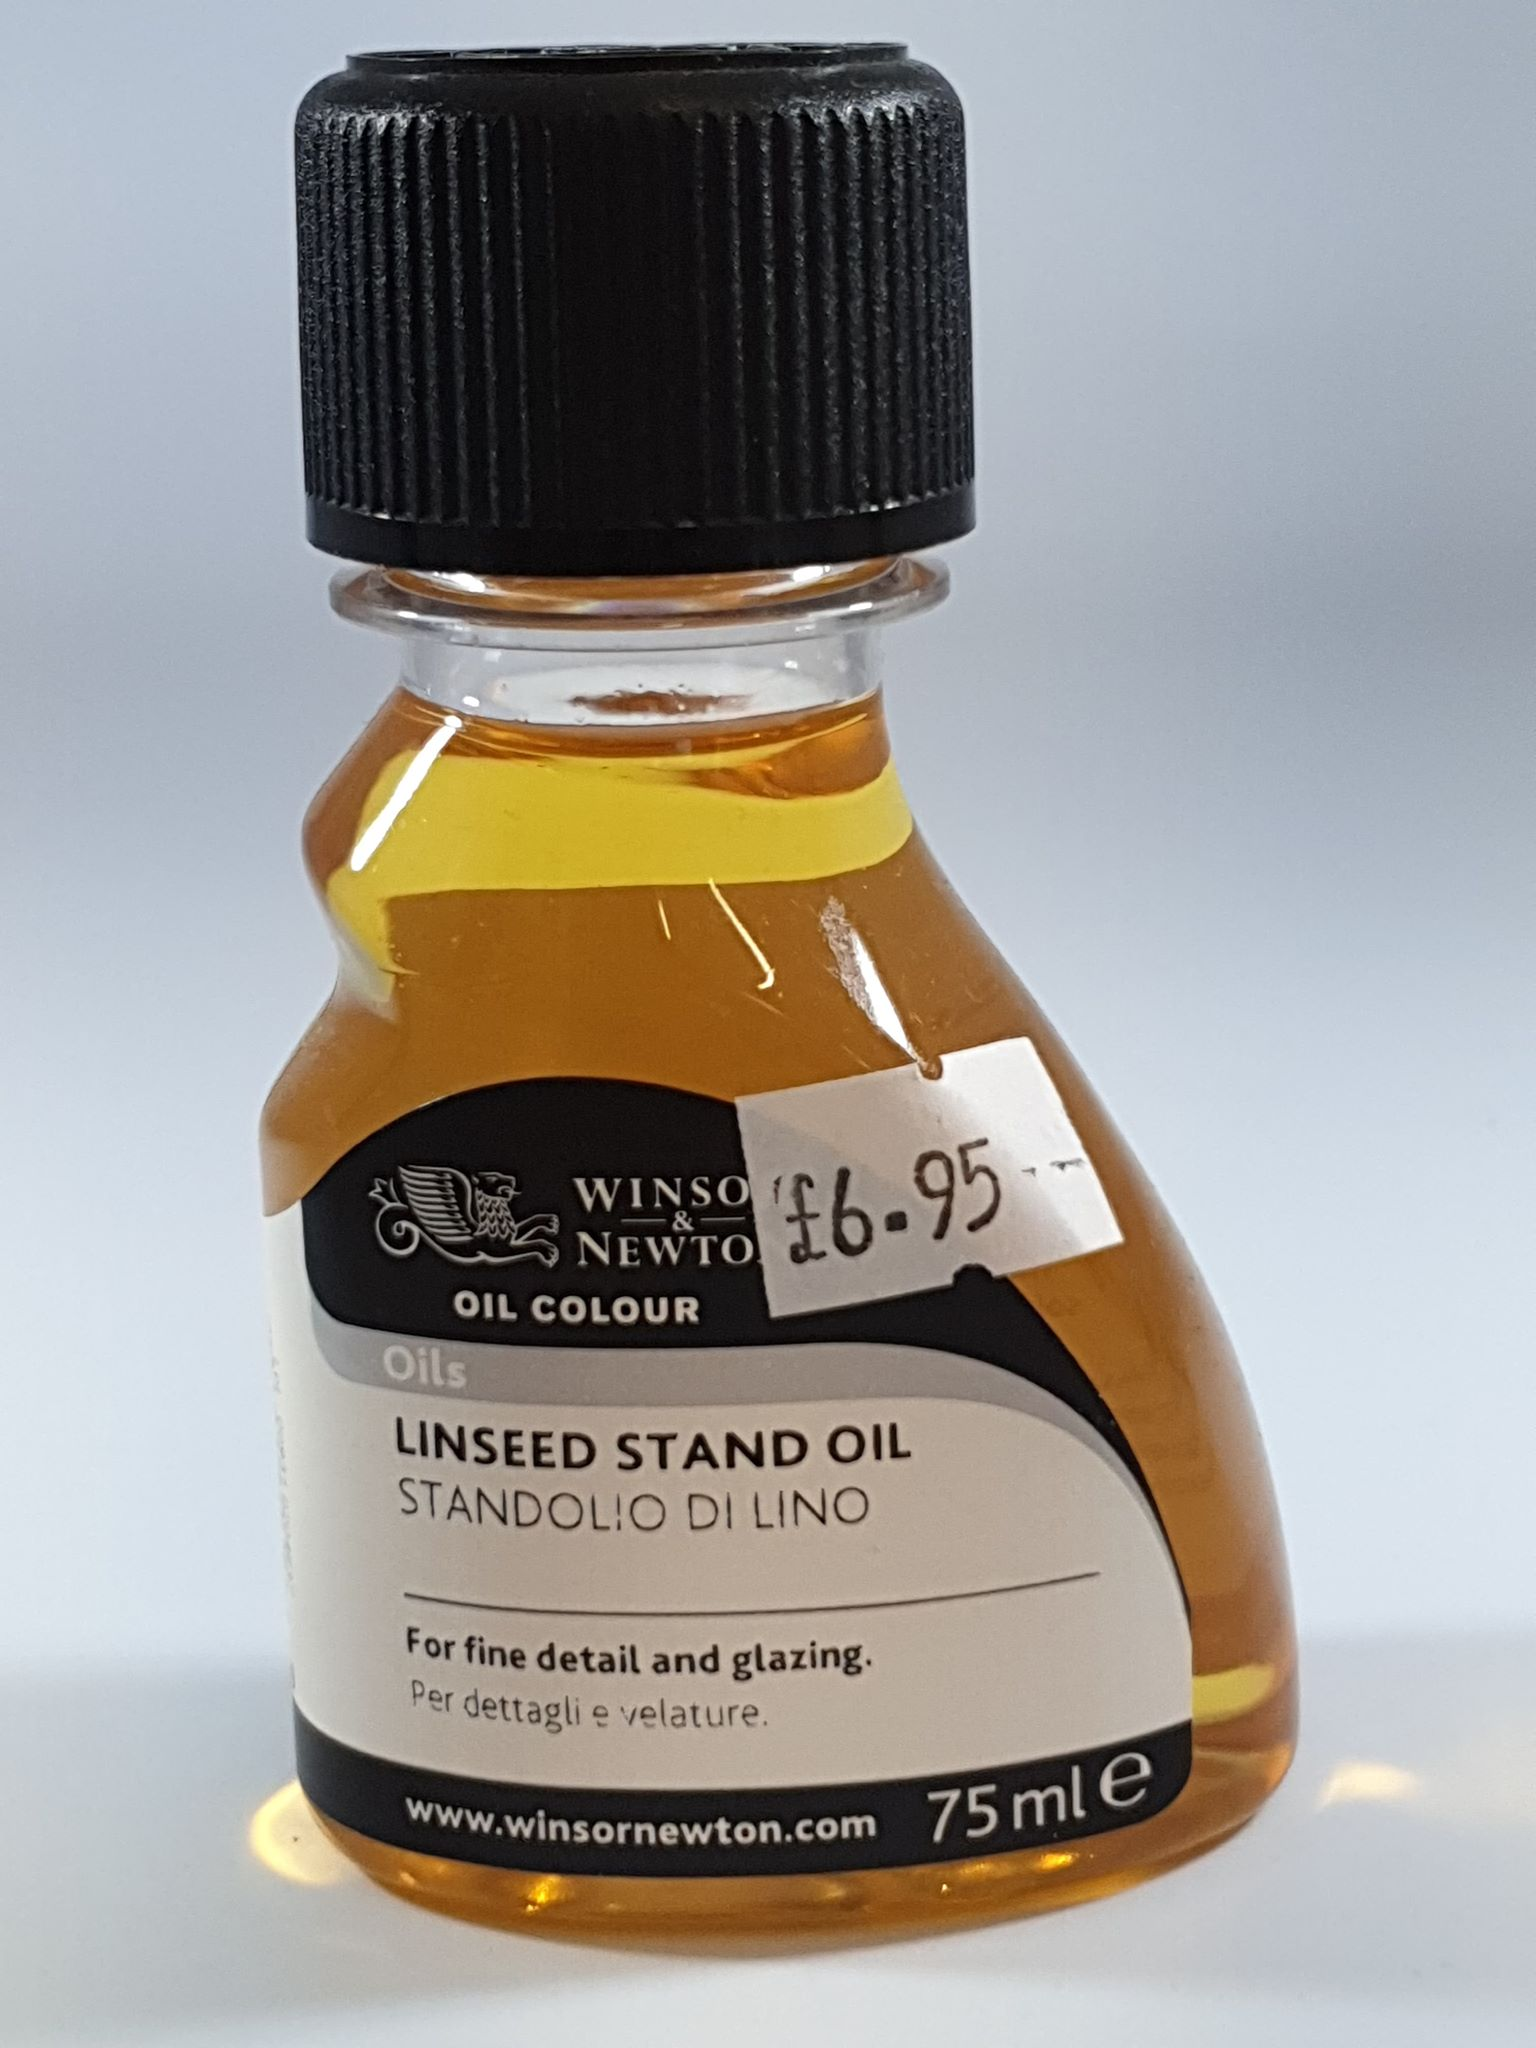 Winsor & Newton Linseed Oil